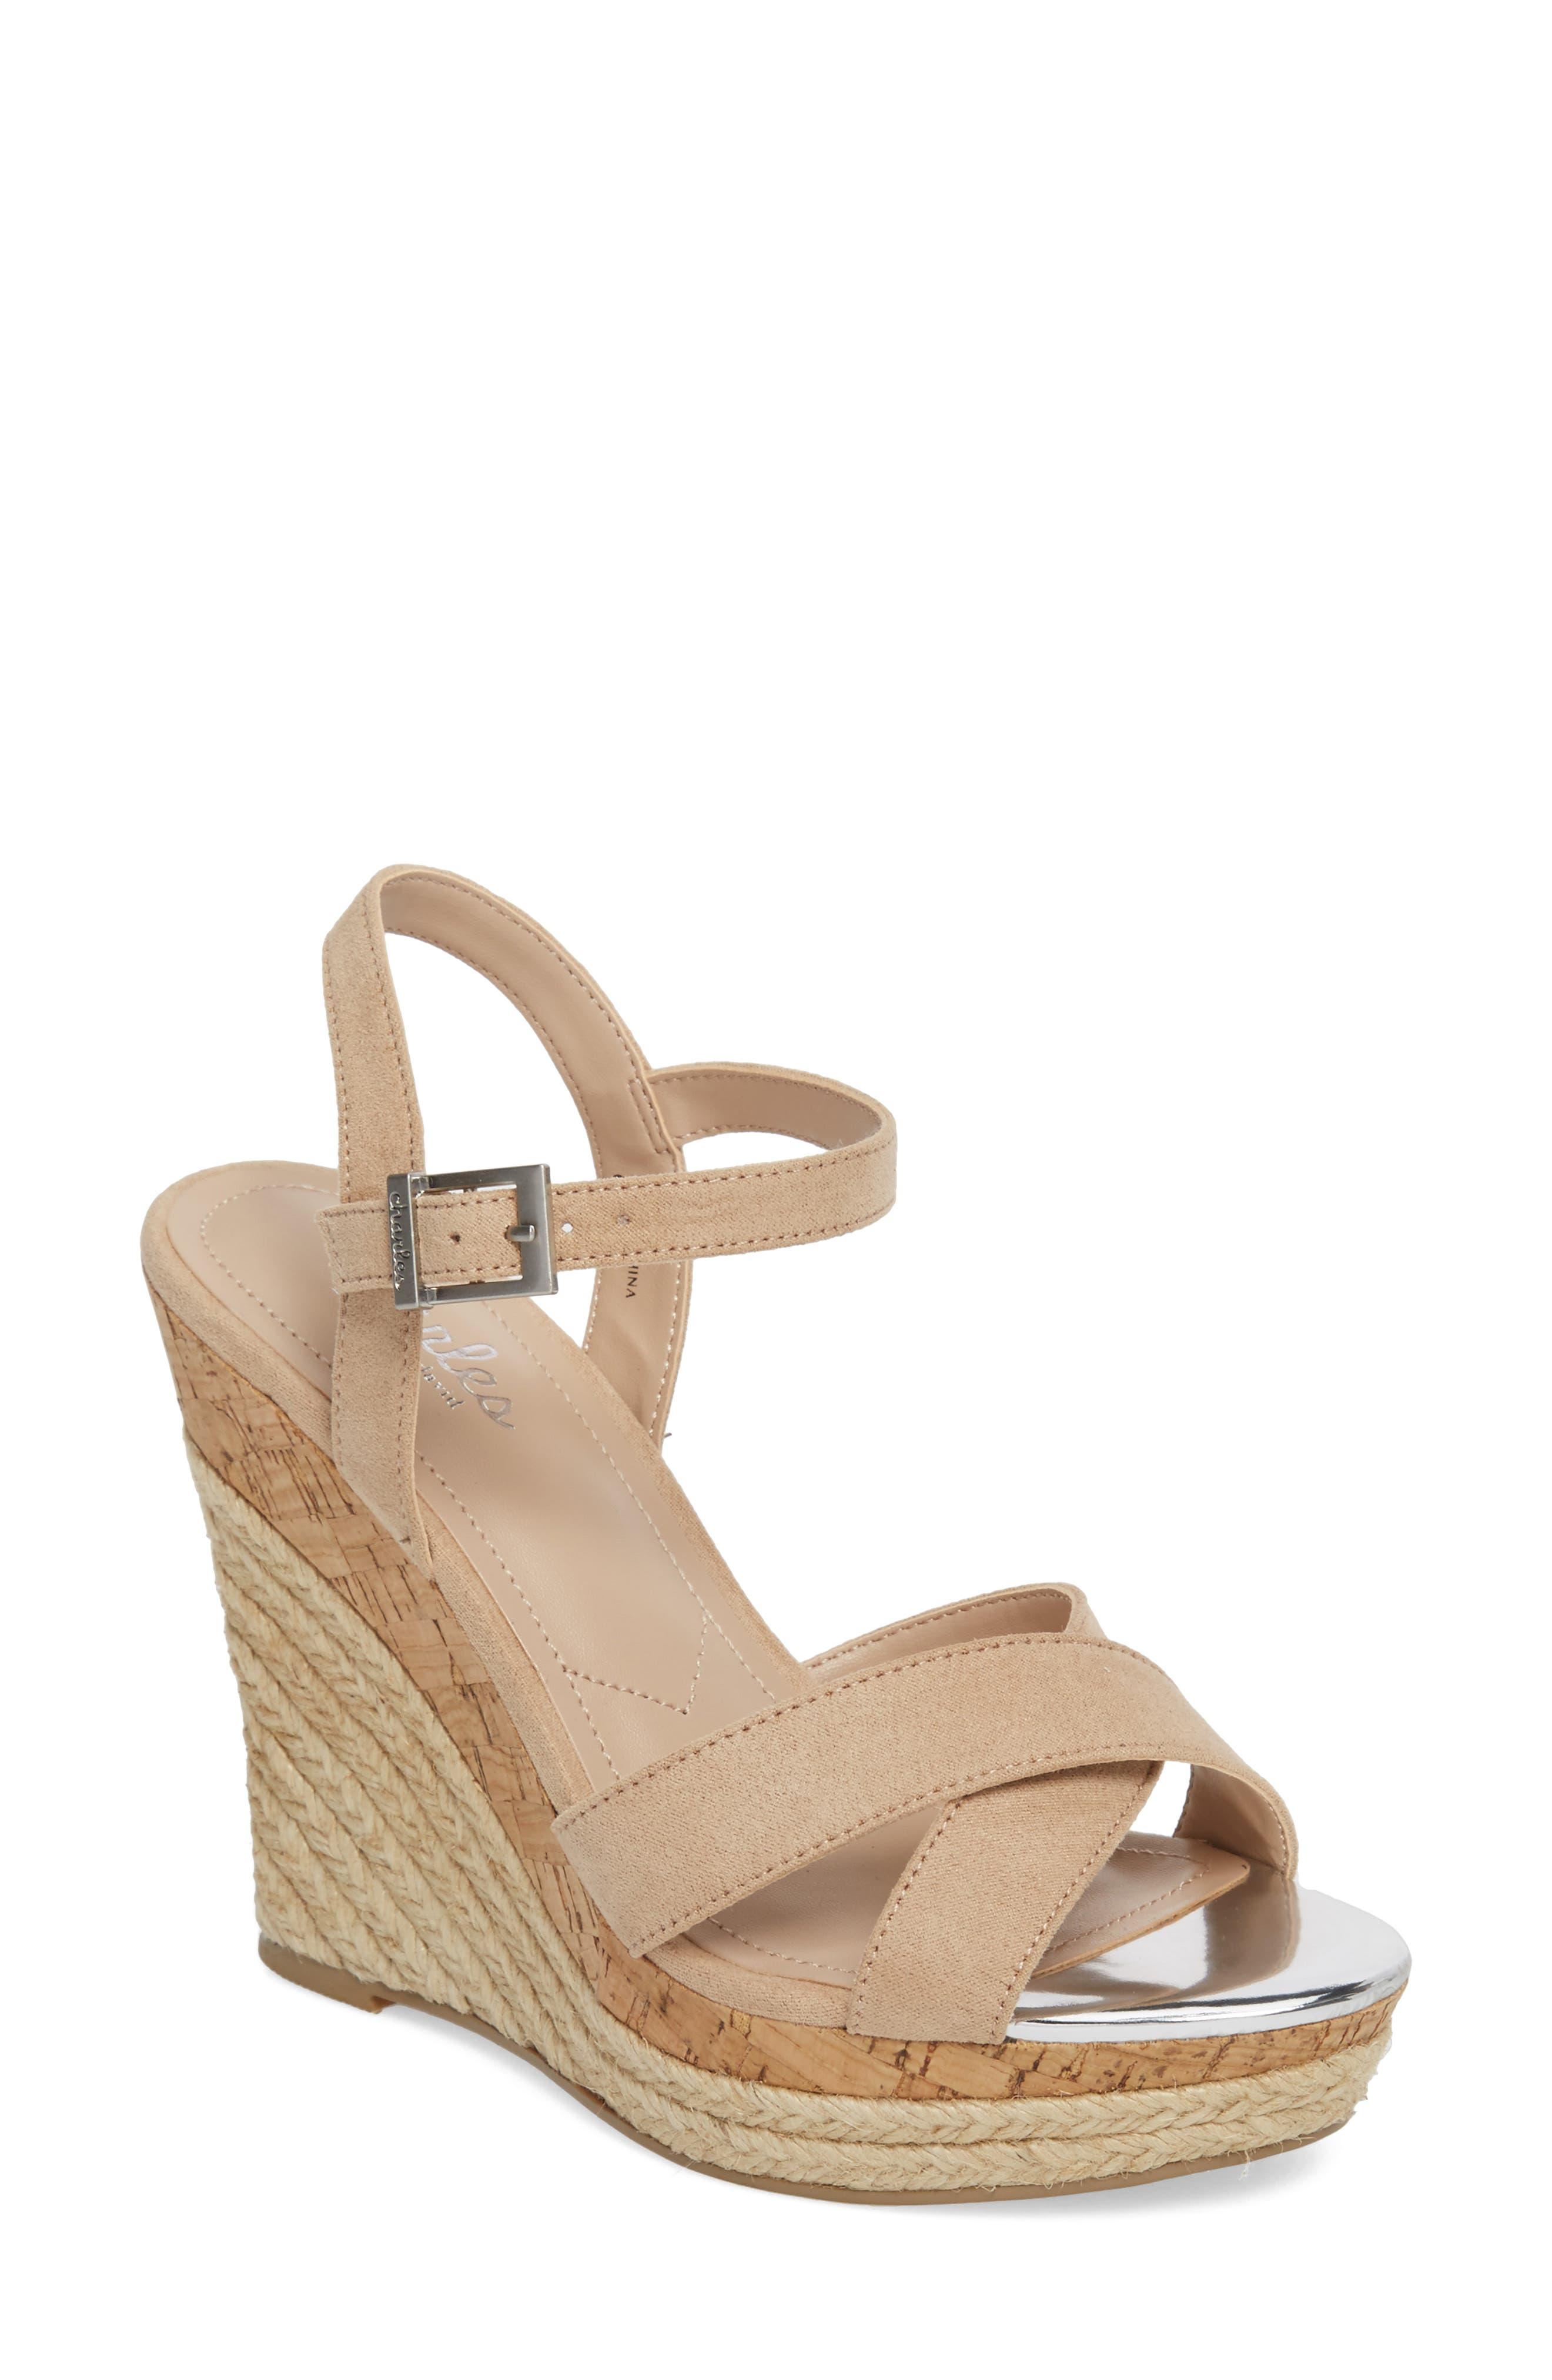 Charles by Charles David Archie Espadrille Wedge (Women)